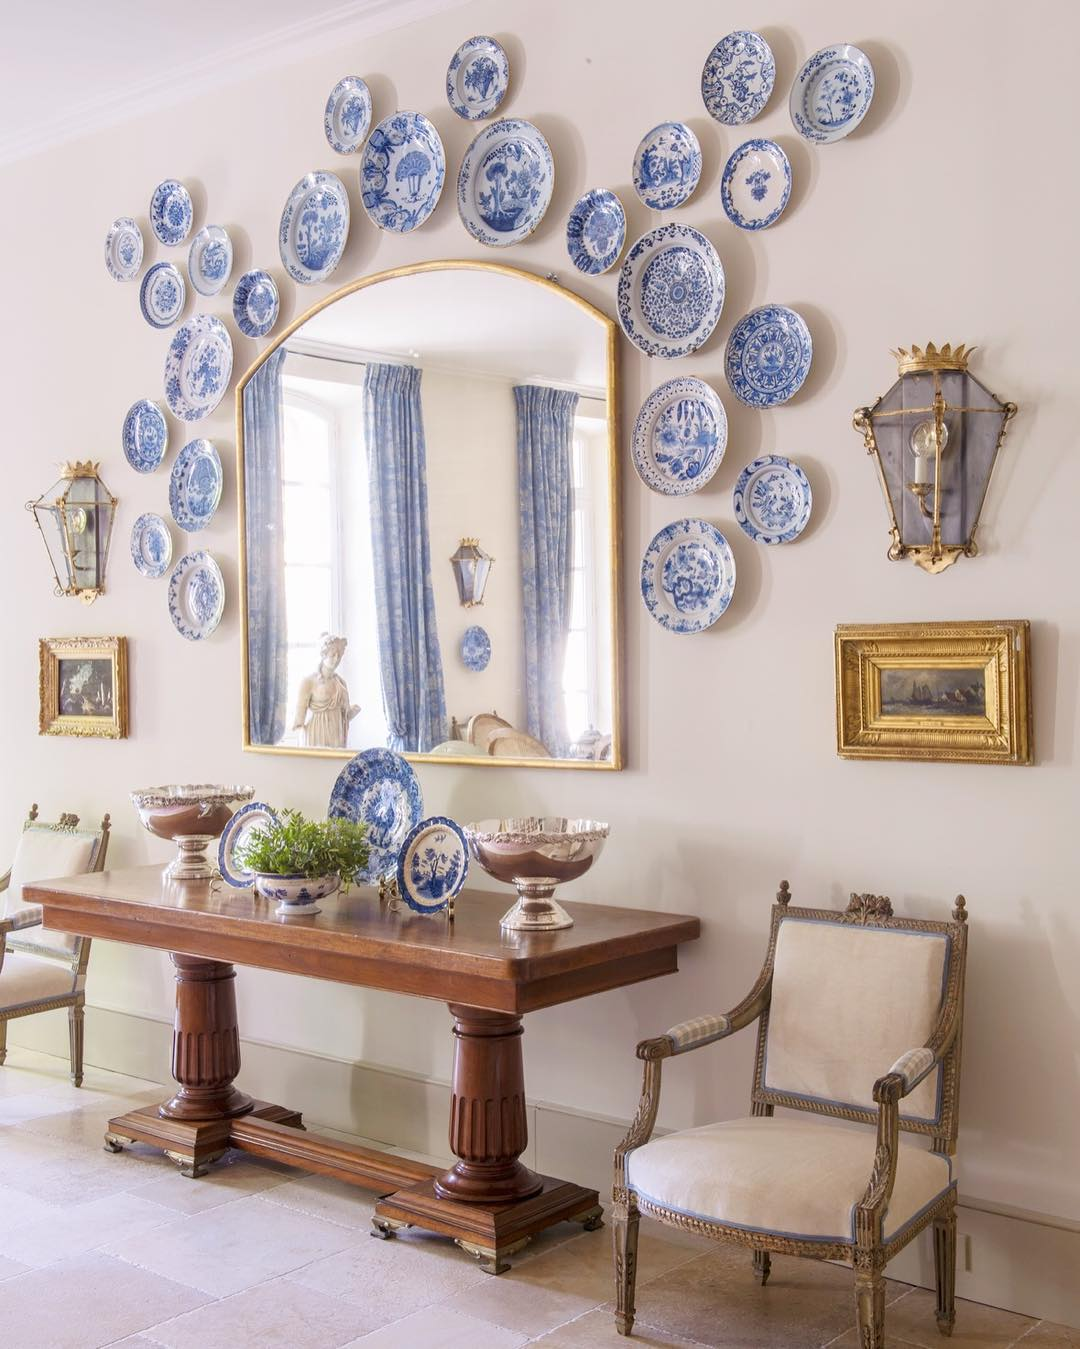 antique-delft-wall-plates-blue-and-white & antique-delft-wall-plates-blue-and-white - The Glam Pad